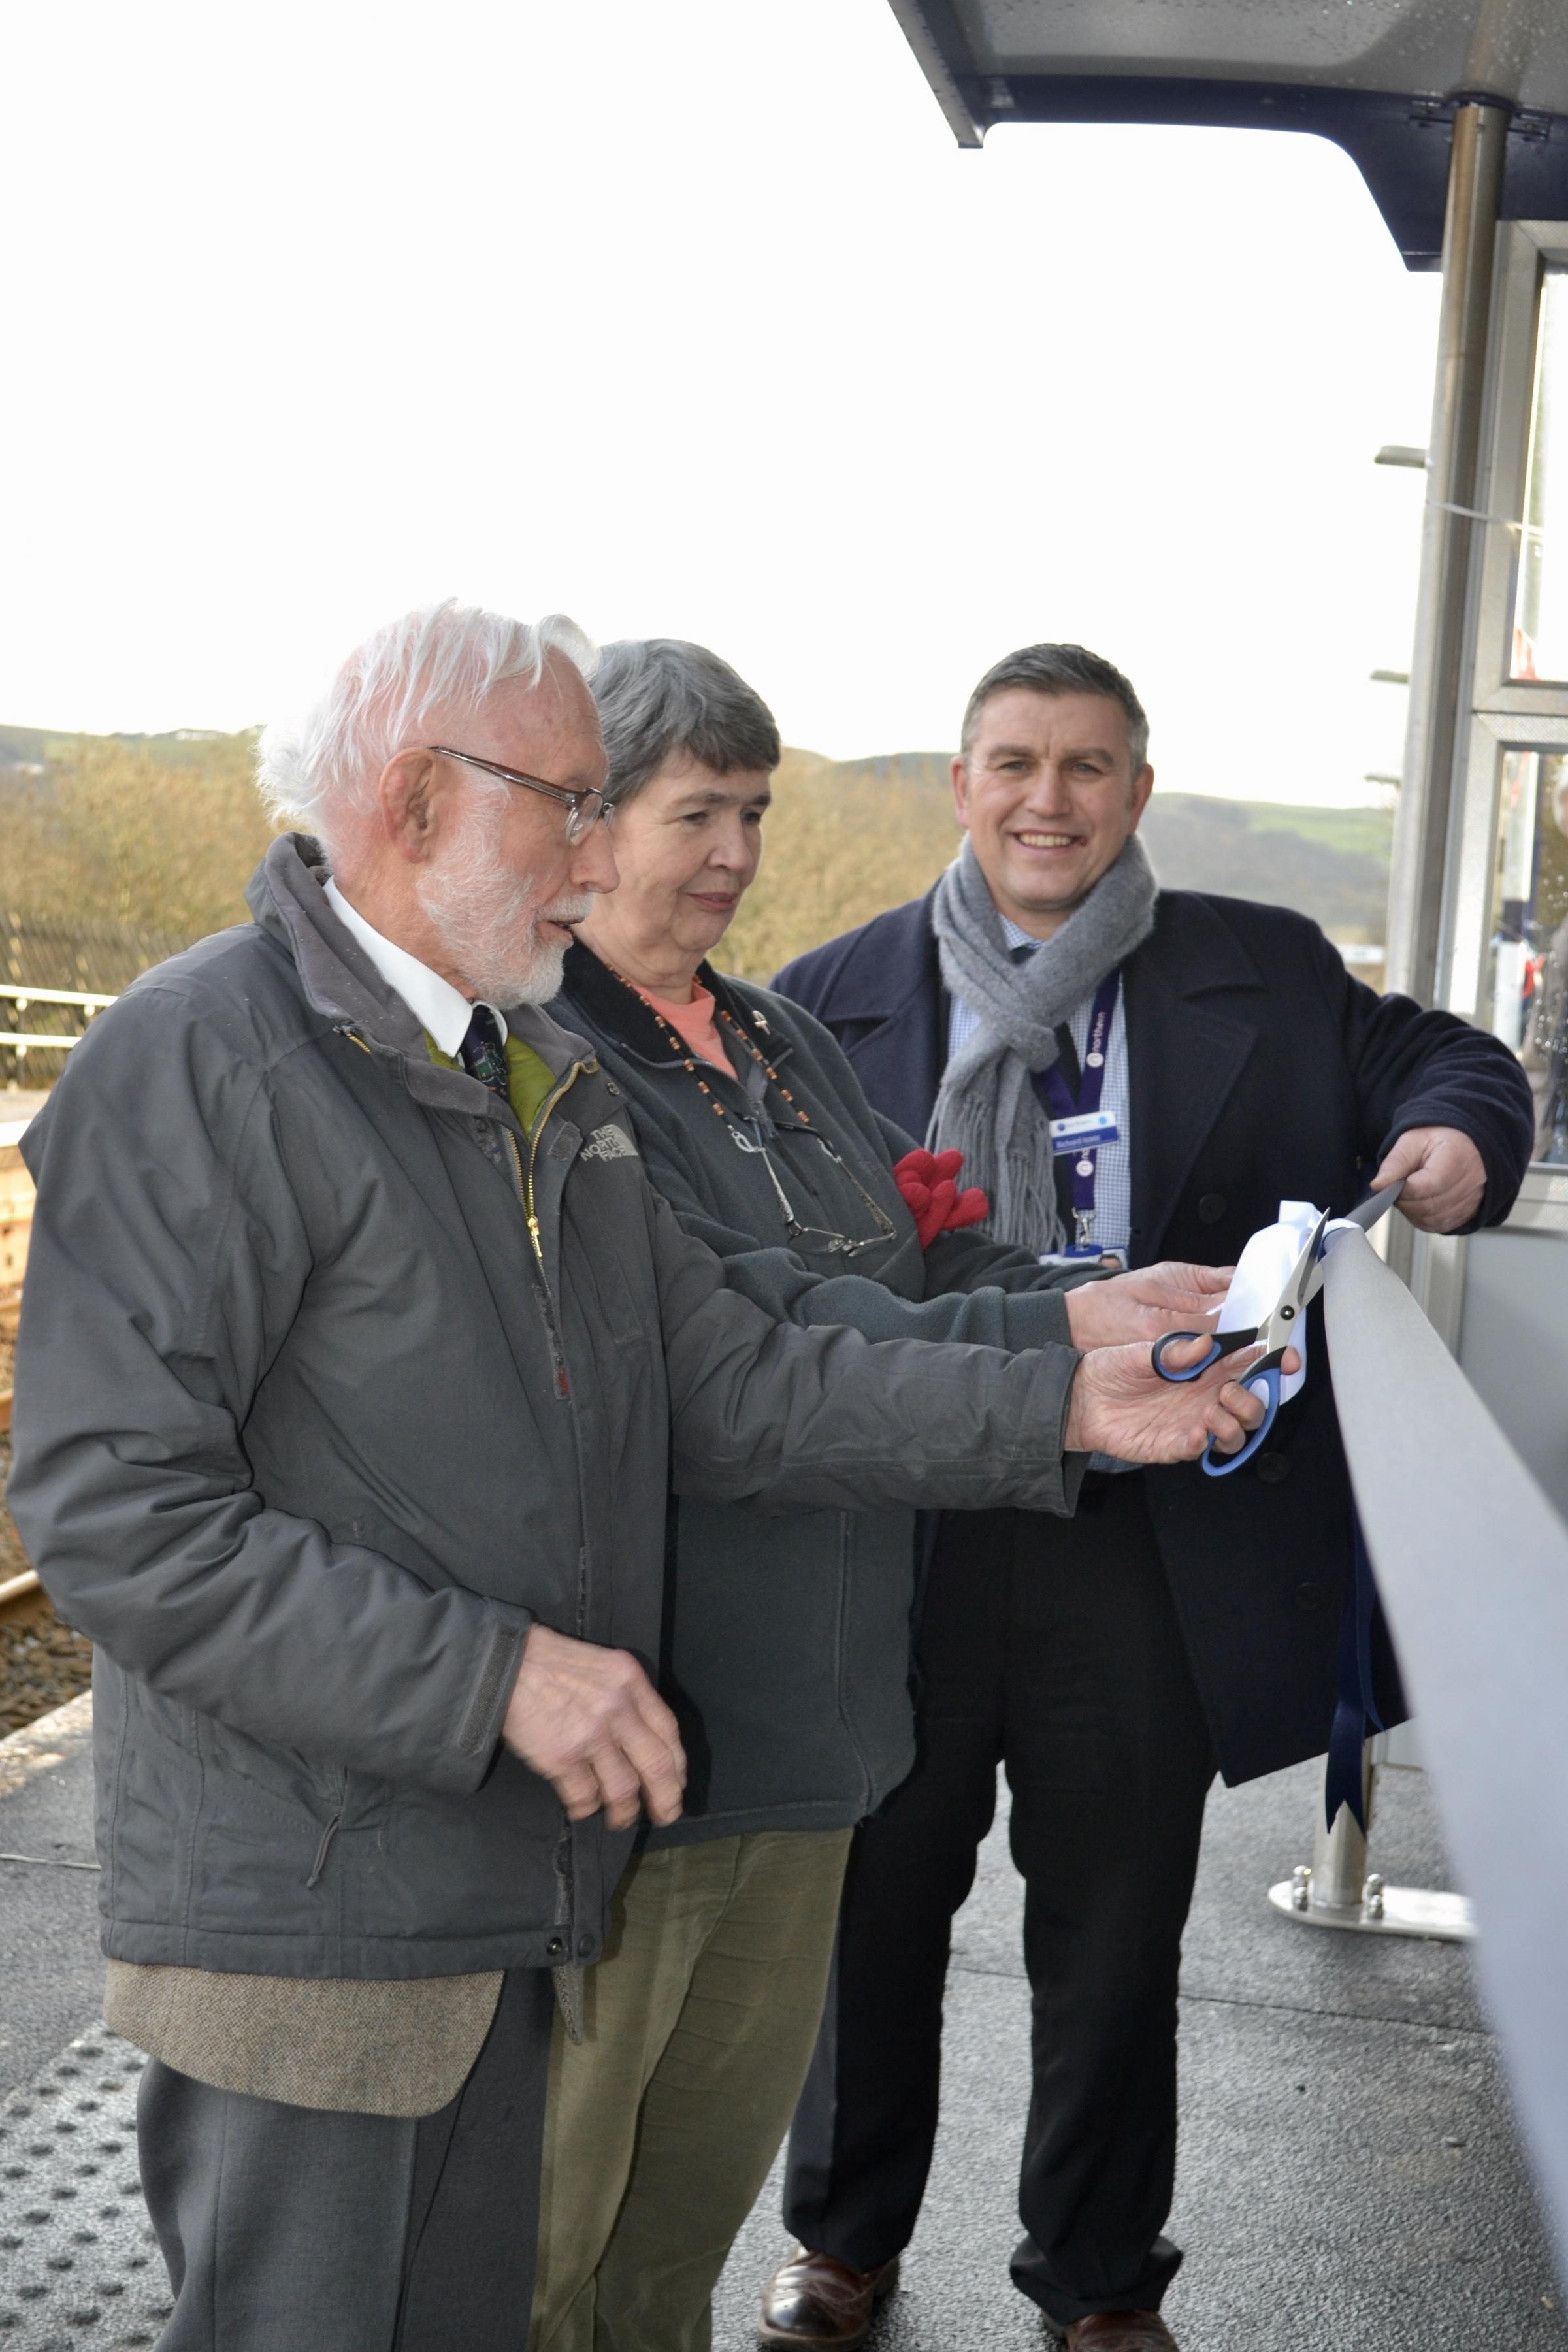 Getting out of the rain - from left: John Bearpark, president, Lancaster and Skipton Rail User Group; Councillor Margaret Airey, Giggleswick Parish Council and Richard Isaac, Community and Sustainability Manager, Northern, (Arriva Rail North Ltd). Picture